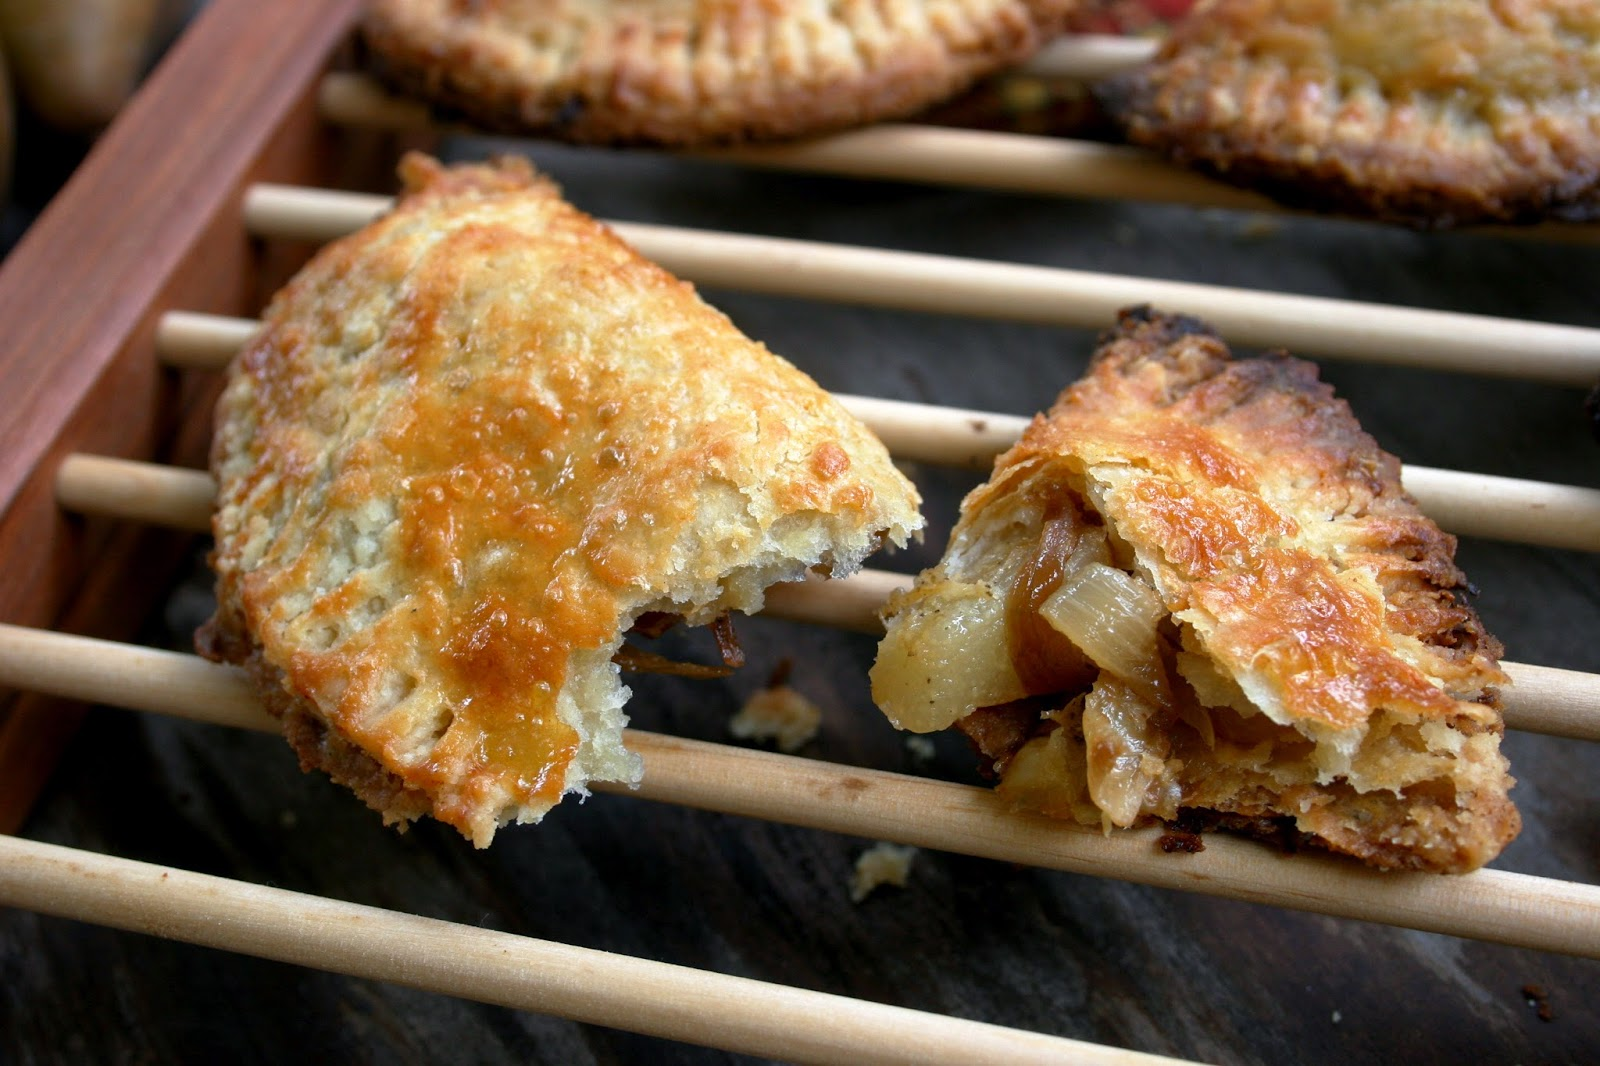 Pear, Gruyere & Caramelized Onion Hand Pies, close-up